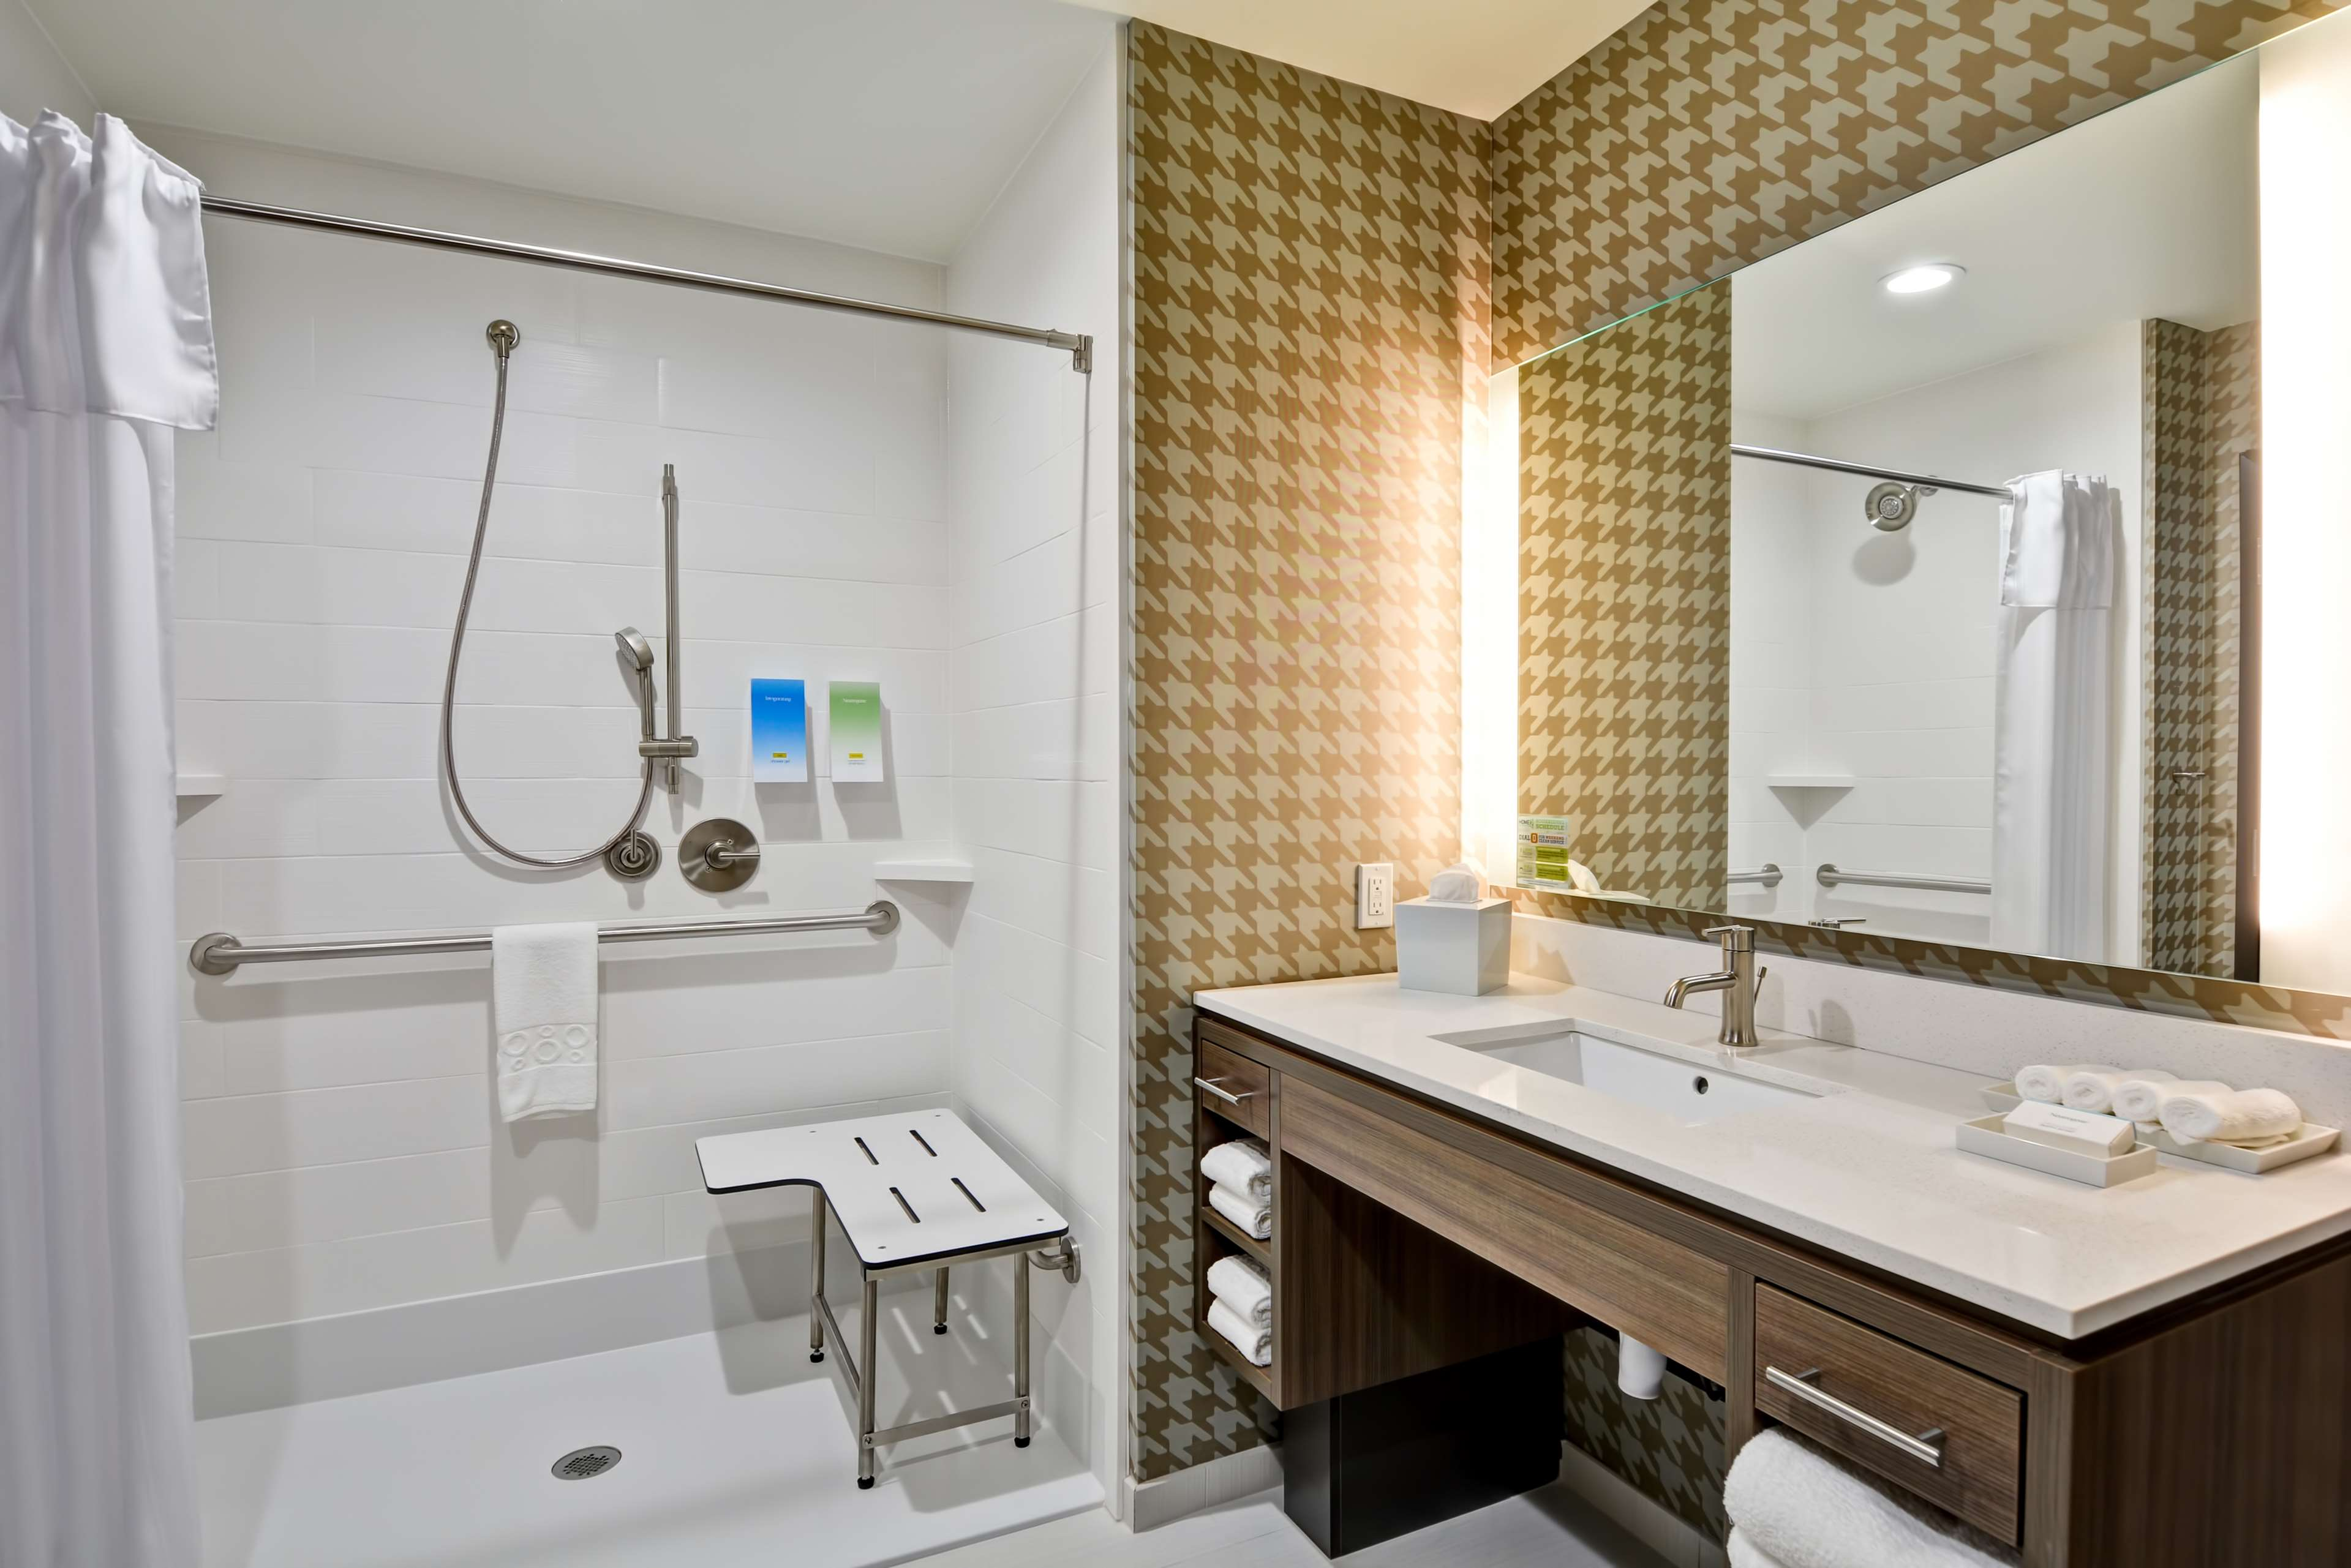 Home2 Suites by Hilton OKC Midwest City Tinker AFB image 26